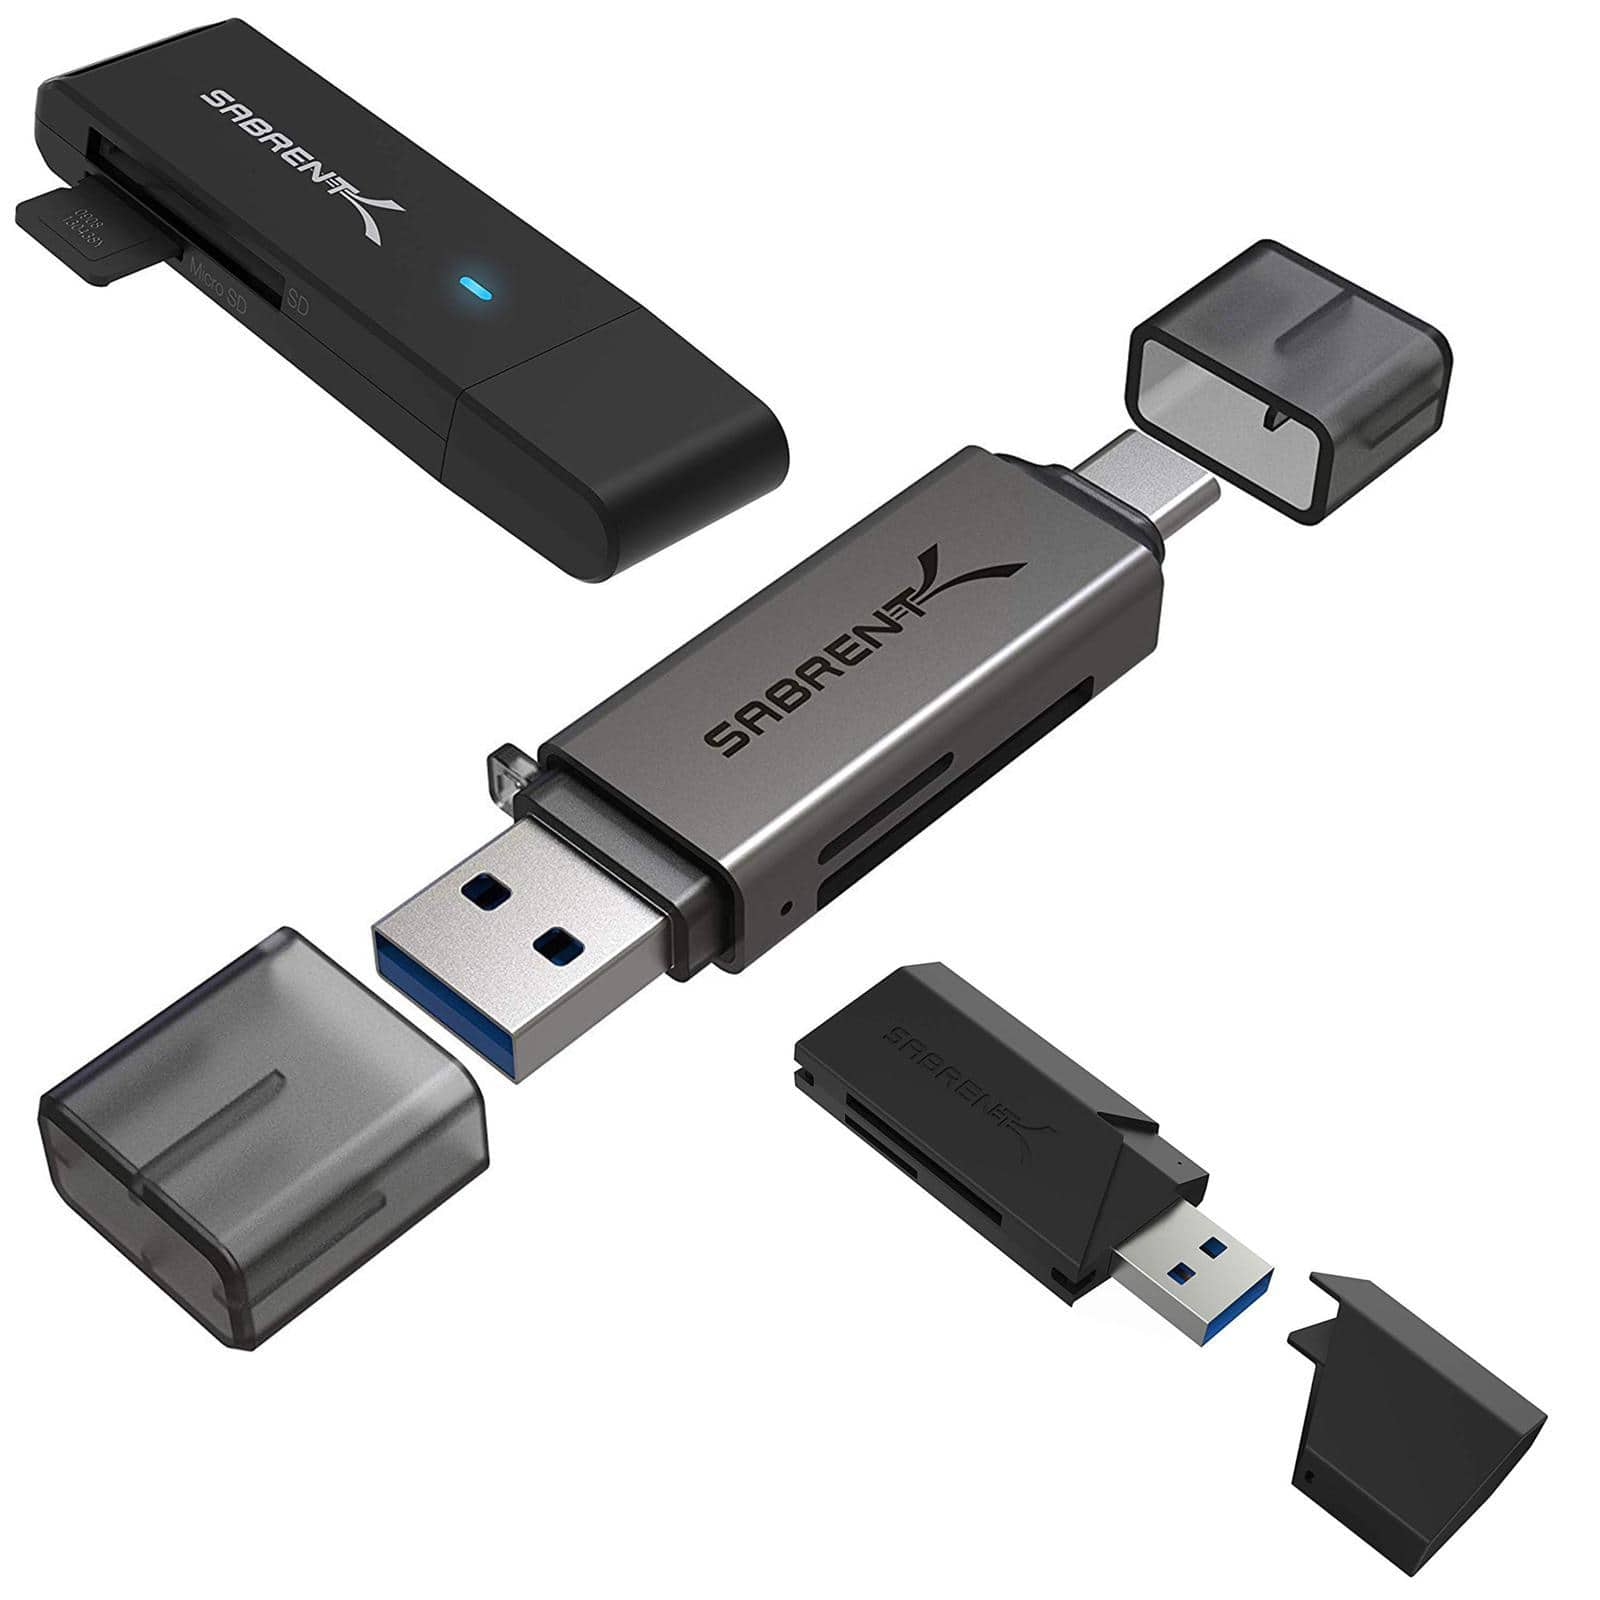 Sabrent 2-Slot USB 3.0 Flash Memory Card Reader $5, USB Type-C OTG Card Reader $7